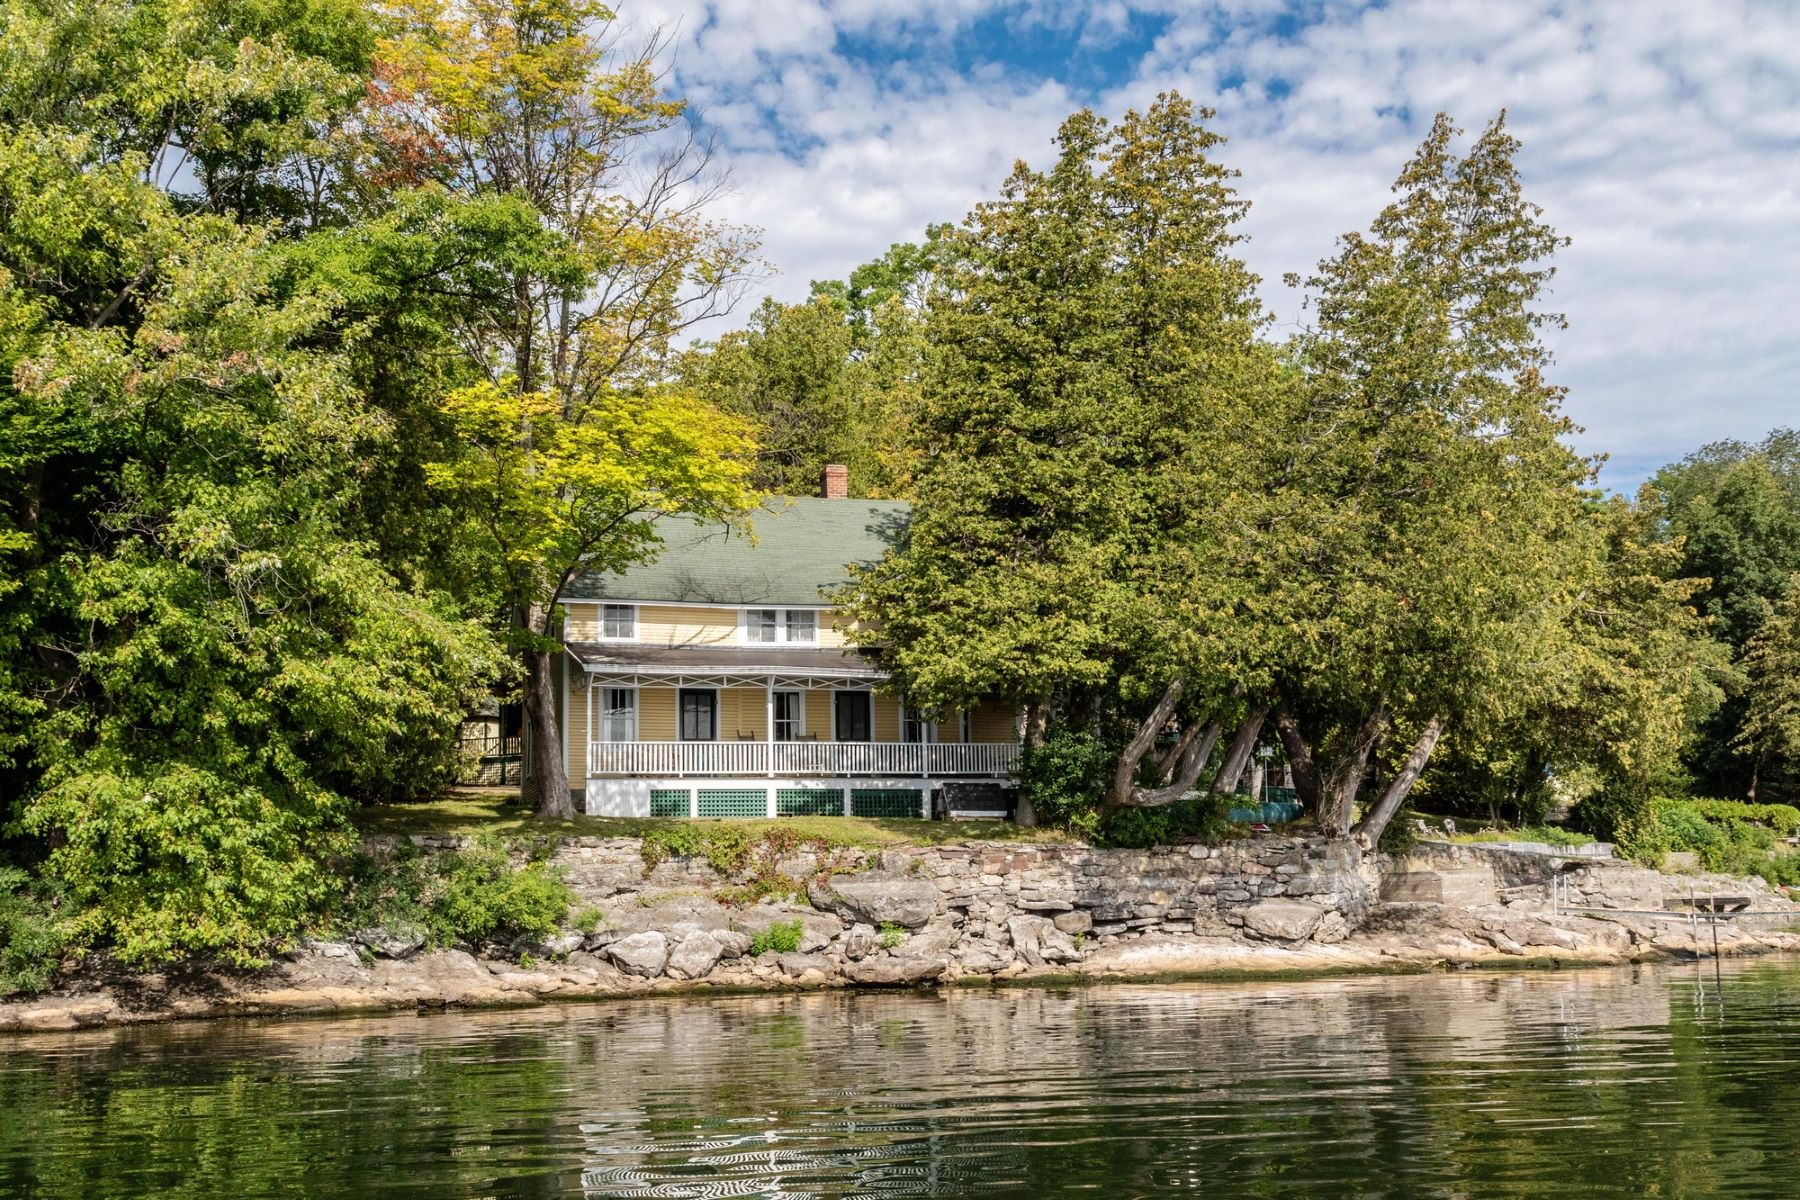 Single Family Homes for Sale at The Lakehouse 2751 Thompson's Point Road Charlotte, Vermont 05445 United States